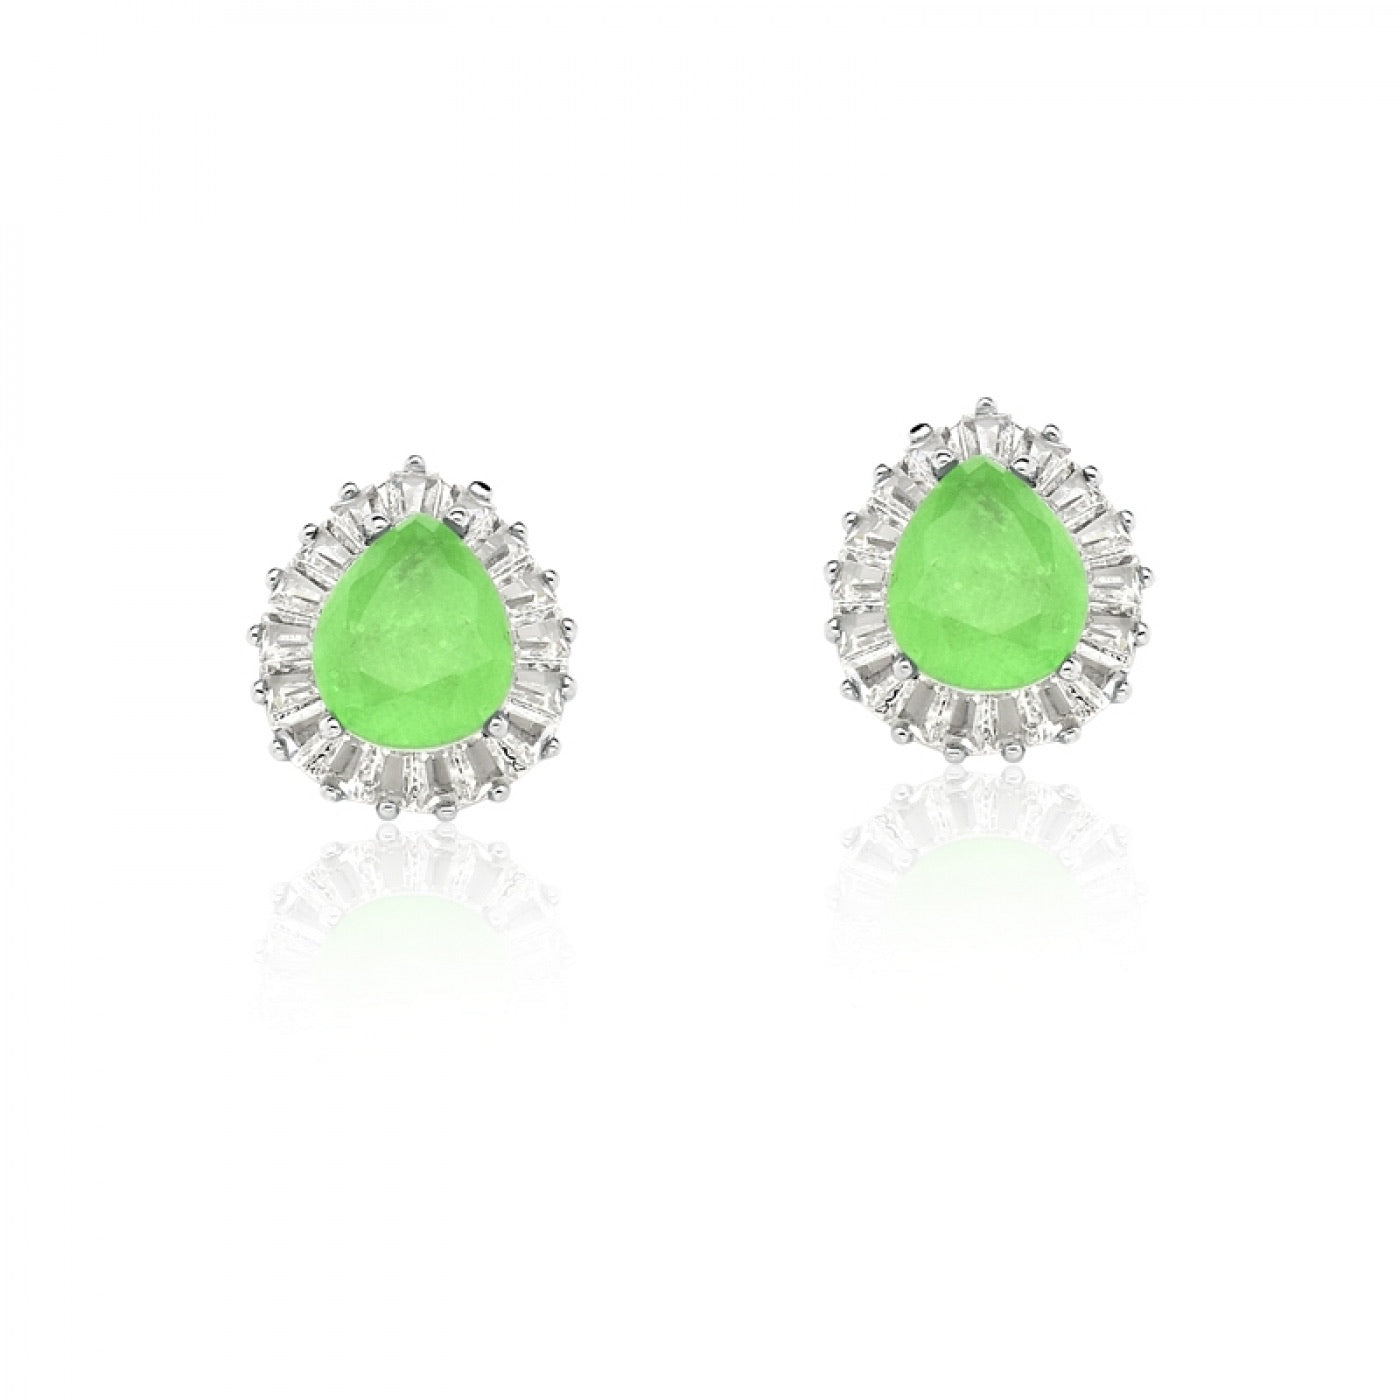 Earring drop shape green glow and zirconia